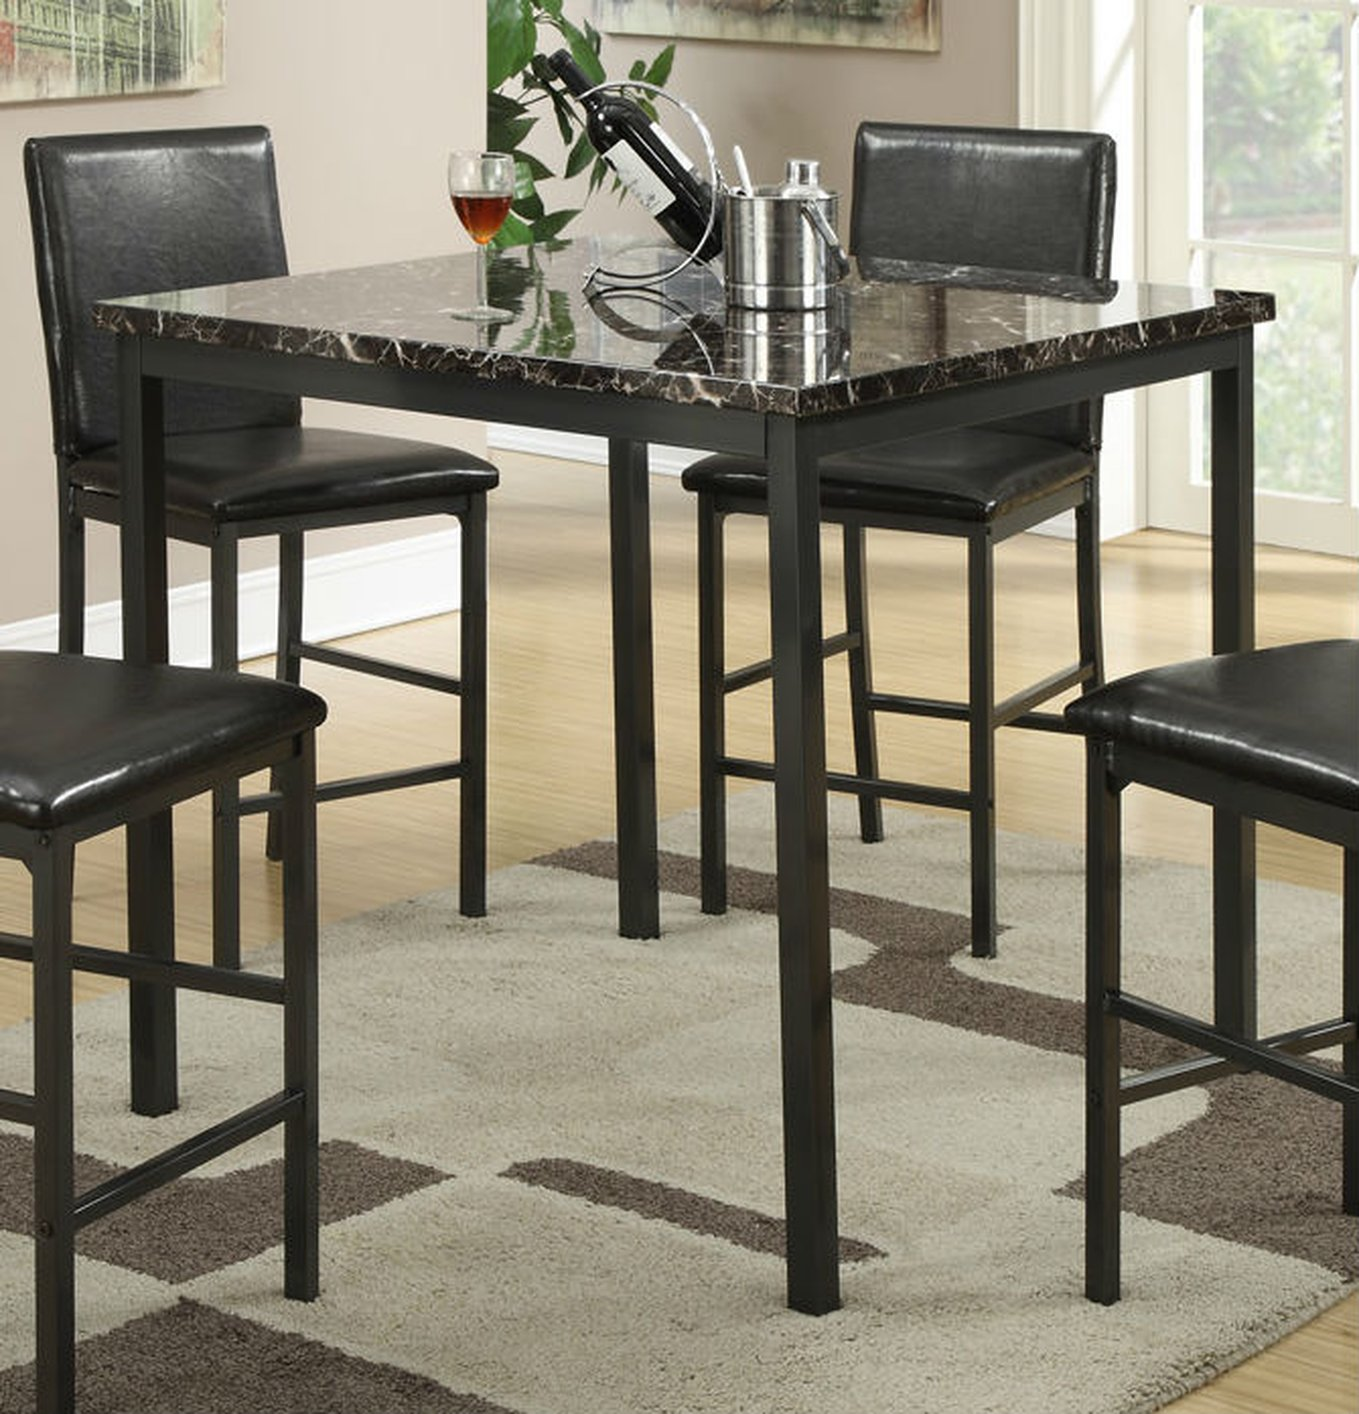 Black Metal Dining Table